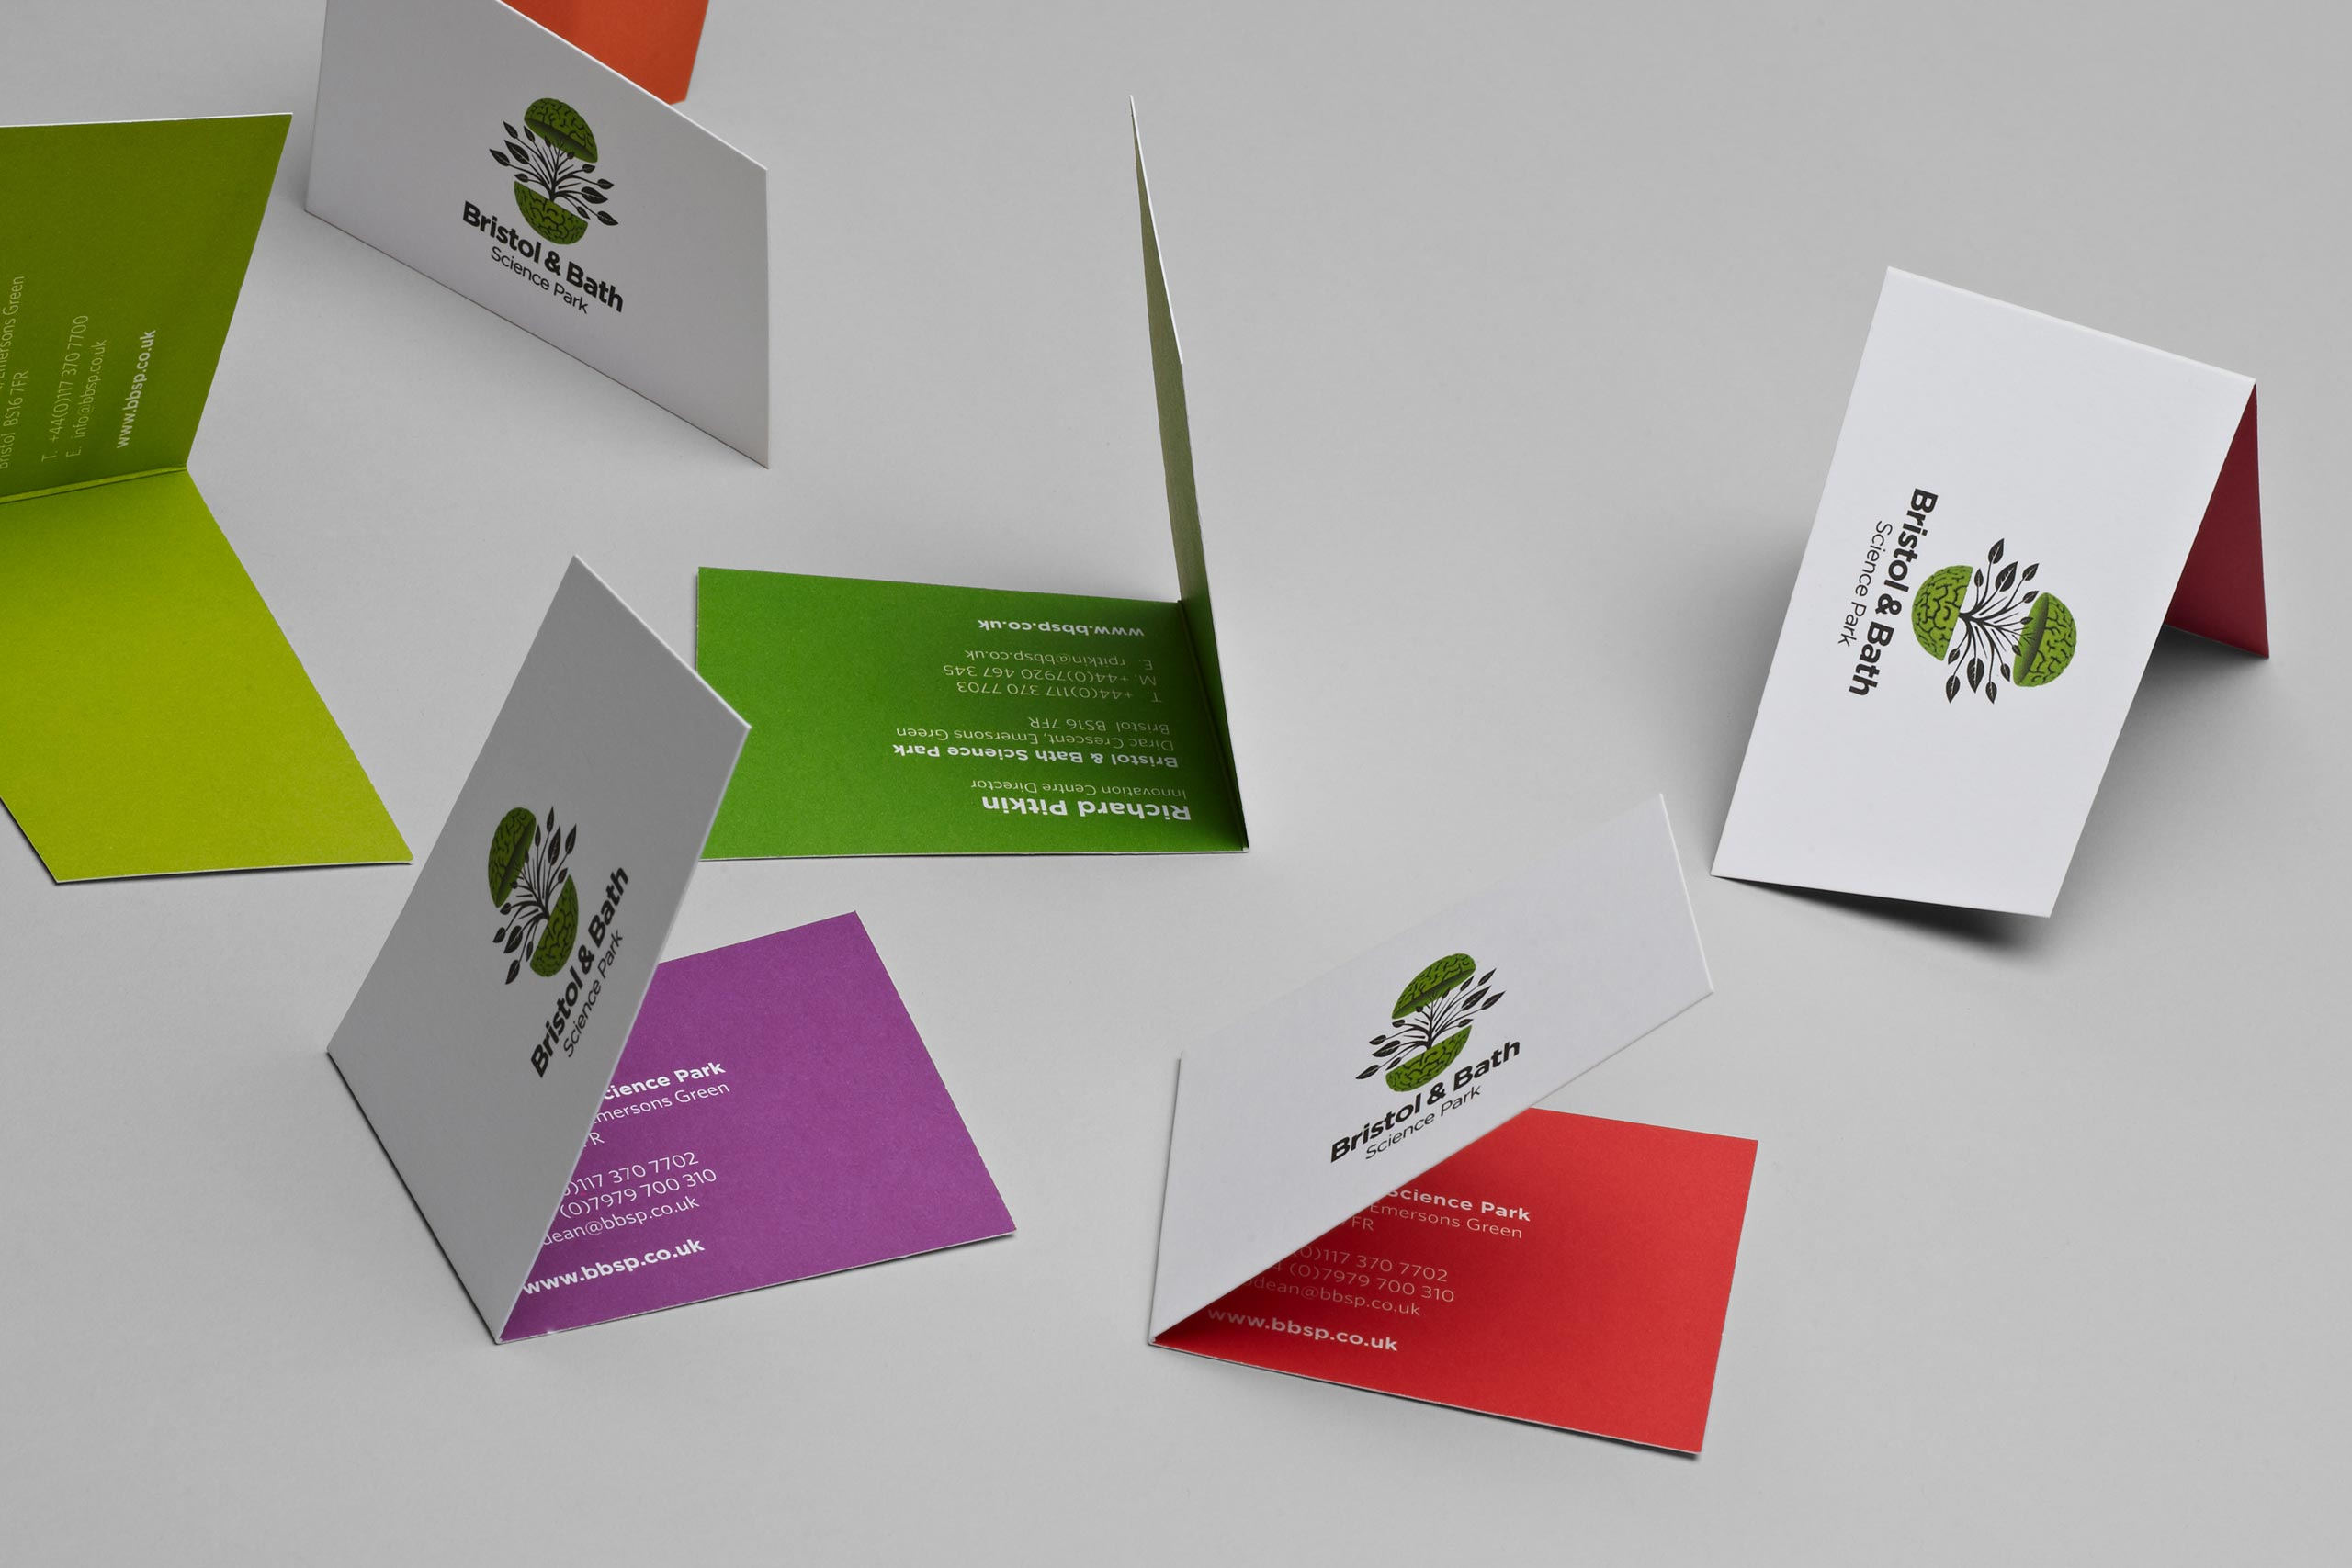 business card for bristol bath science park